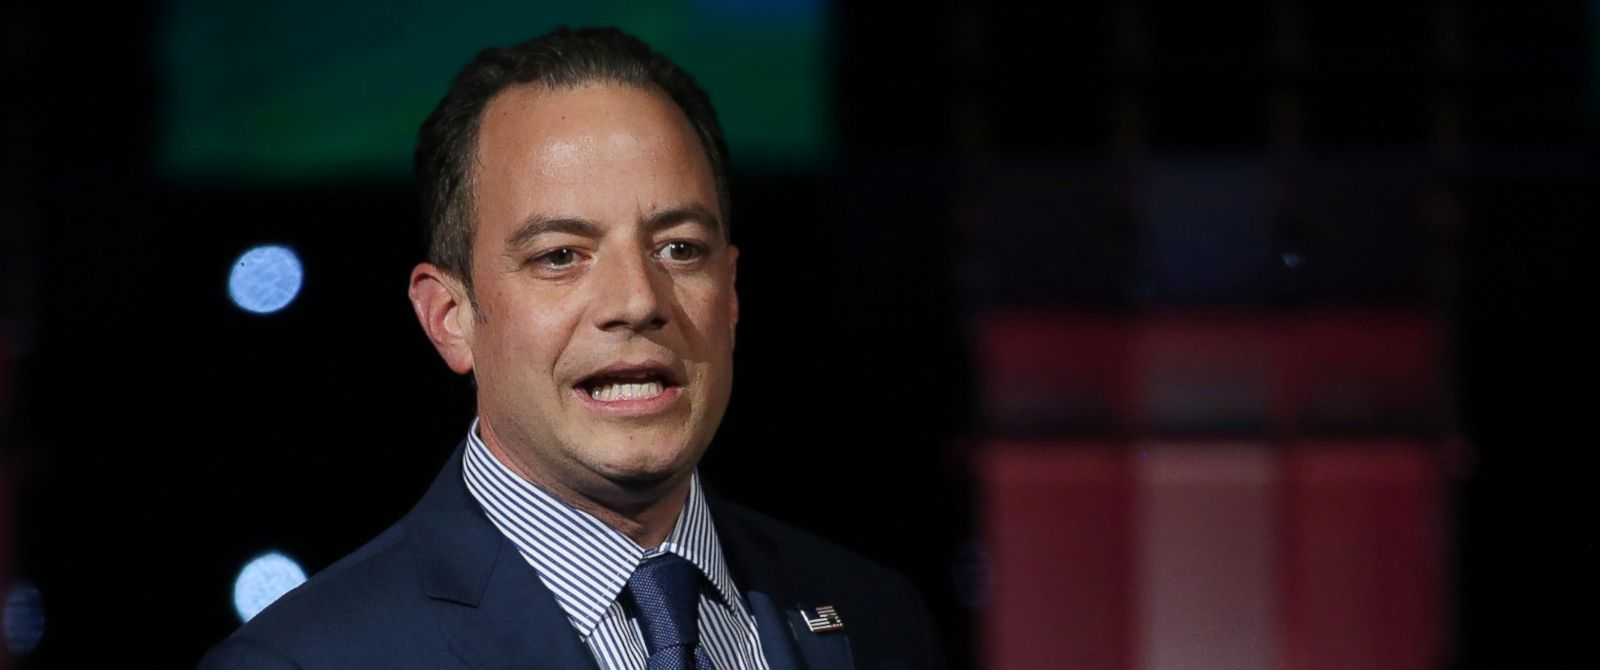 PHOTO: Chairman of the Republican National Committee Reince Priebus speaks before the main the CNN Republican presidential debate, Dec. 15, 2015 in Las Vegas.